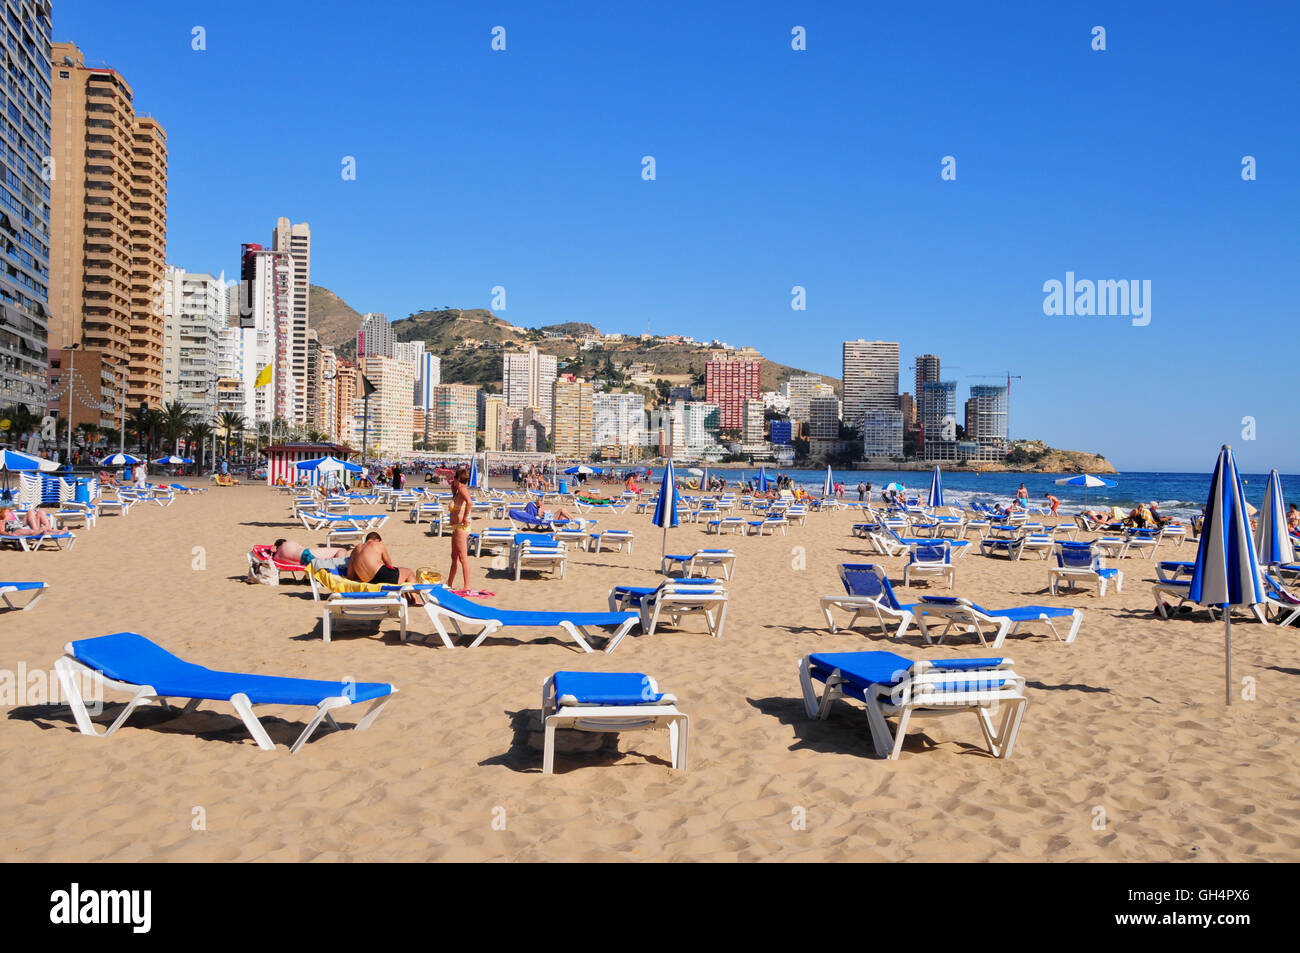 geography / travel, Spain, vacuity loungers at beach of Benidorm, Costa Blanca, Additional-Rights-Clearance-Info - Stock Image